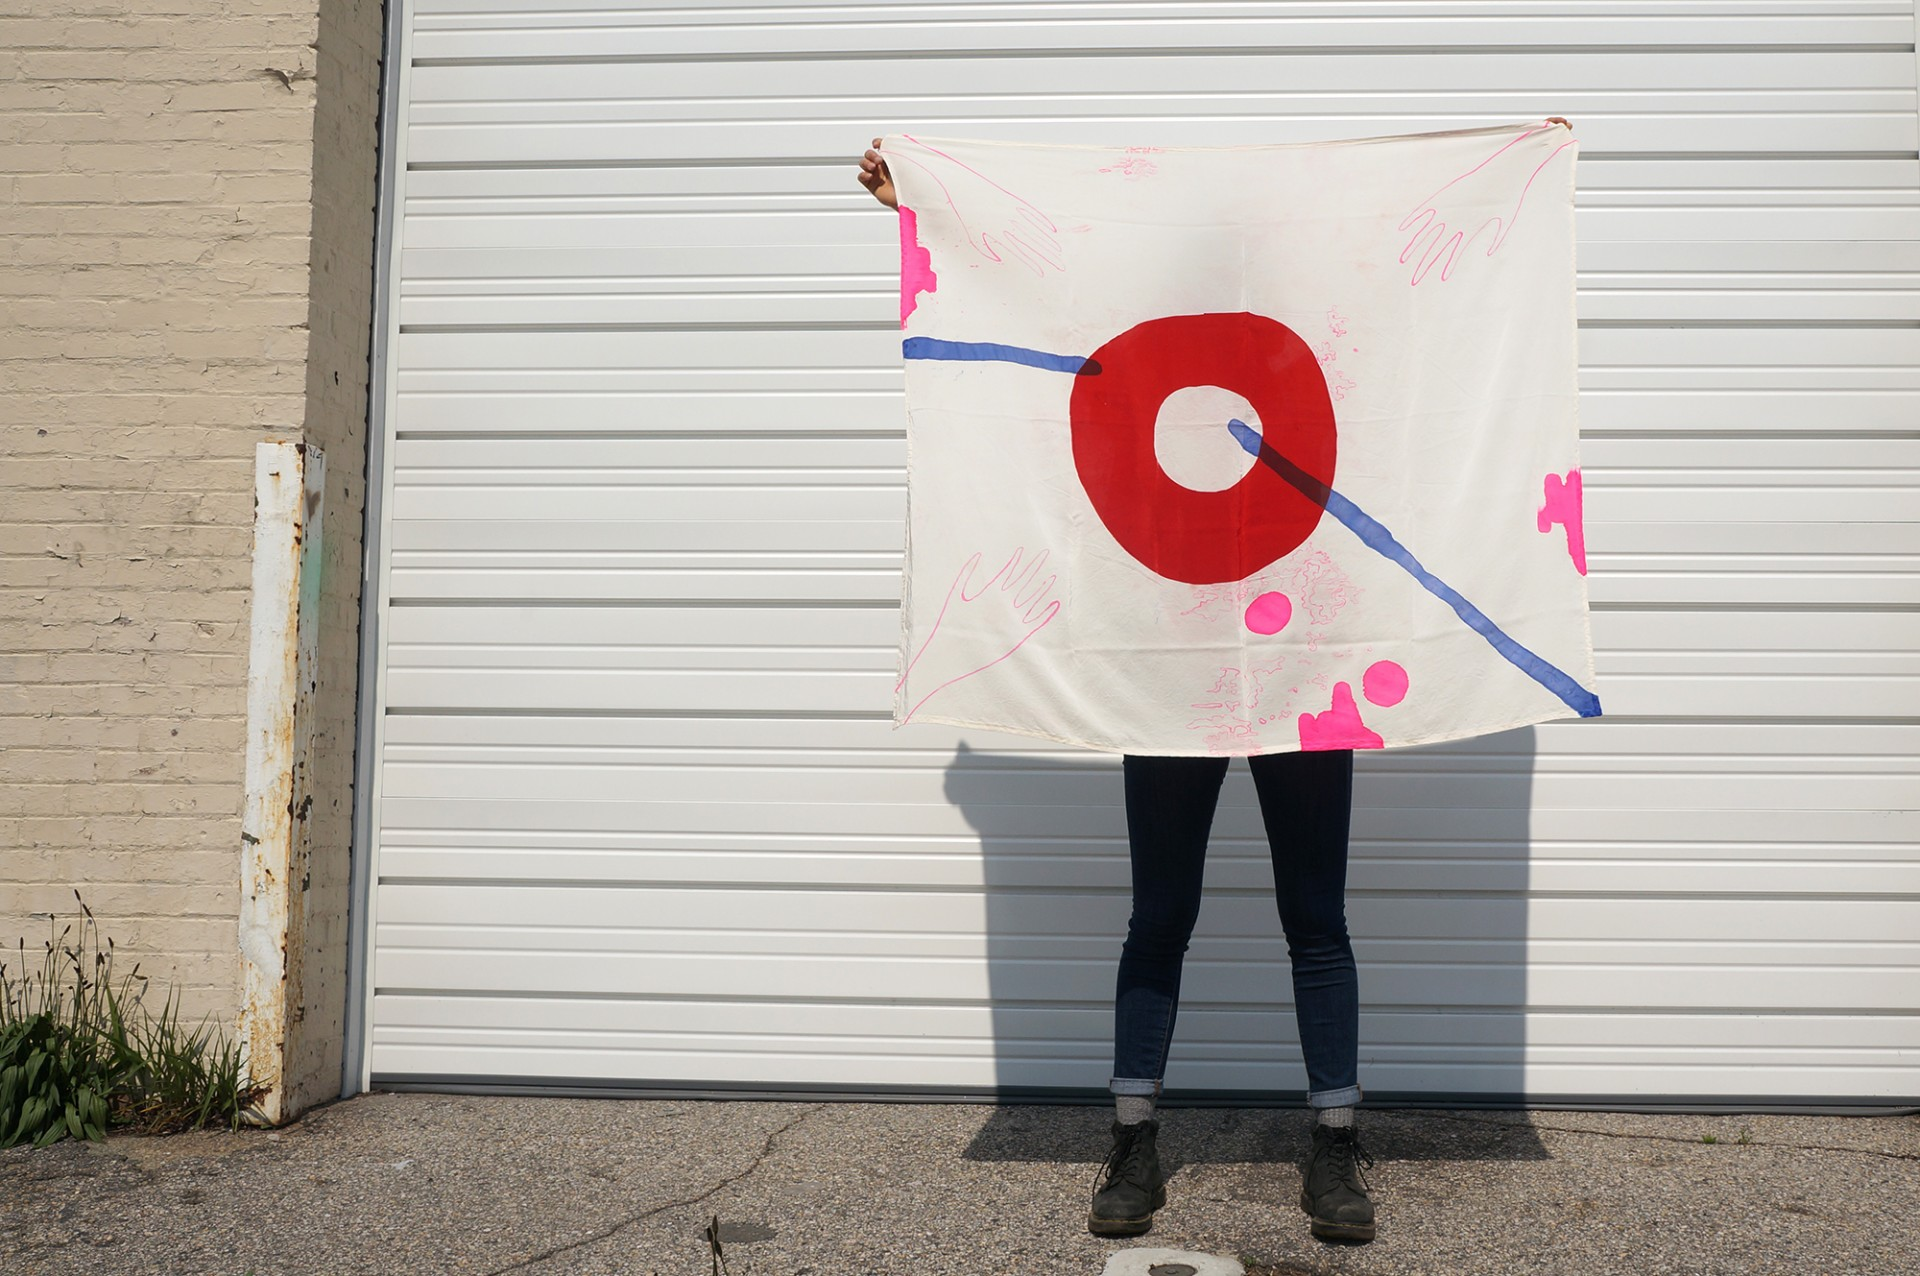 Model holding scarf against wall. Scarf design include bold red circle, pink squiggles and blue lines.